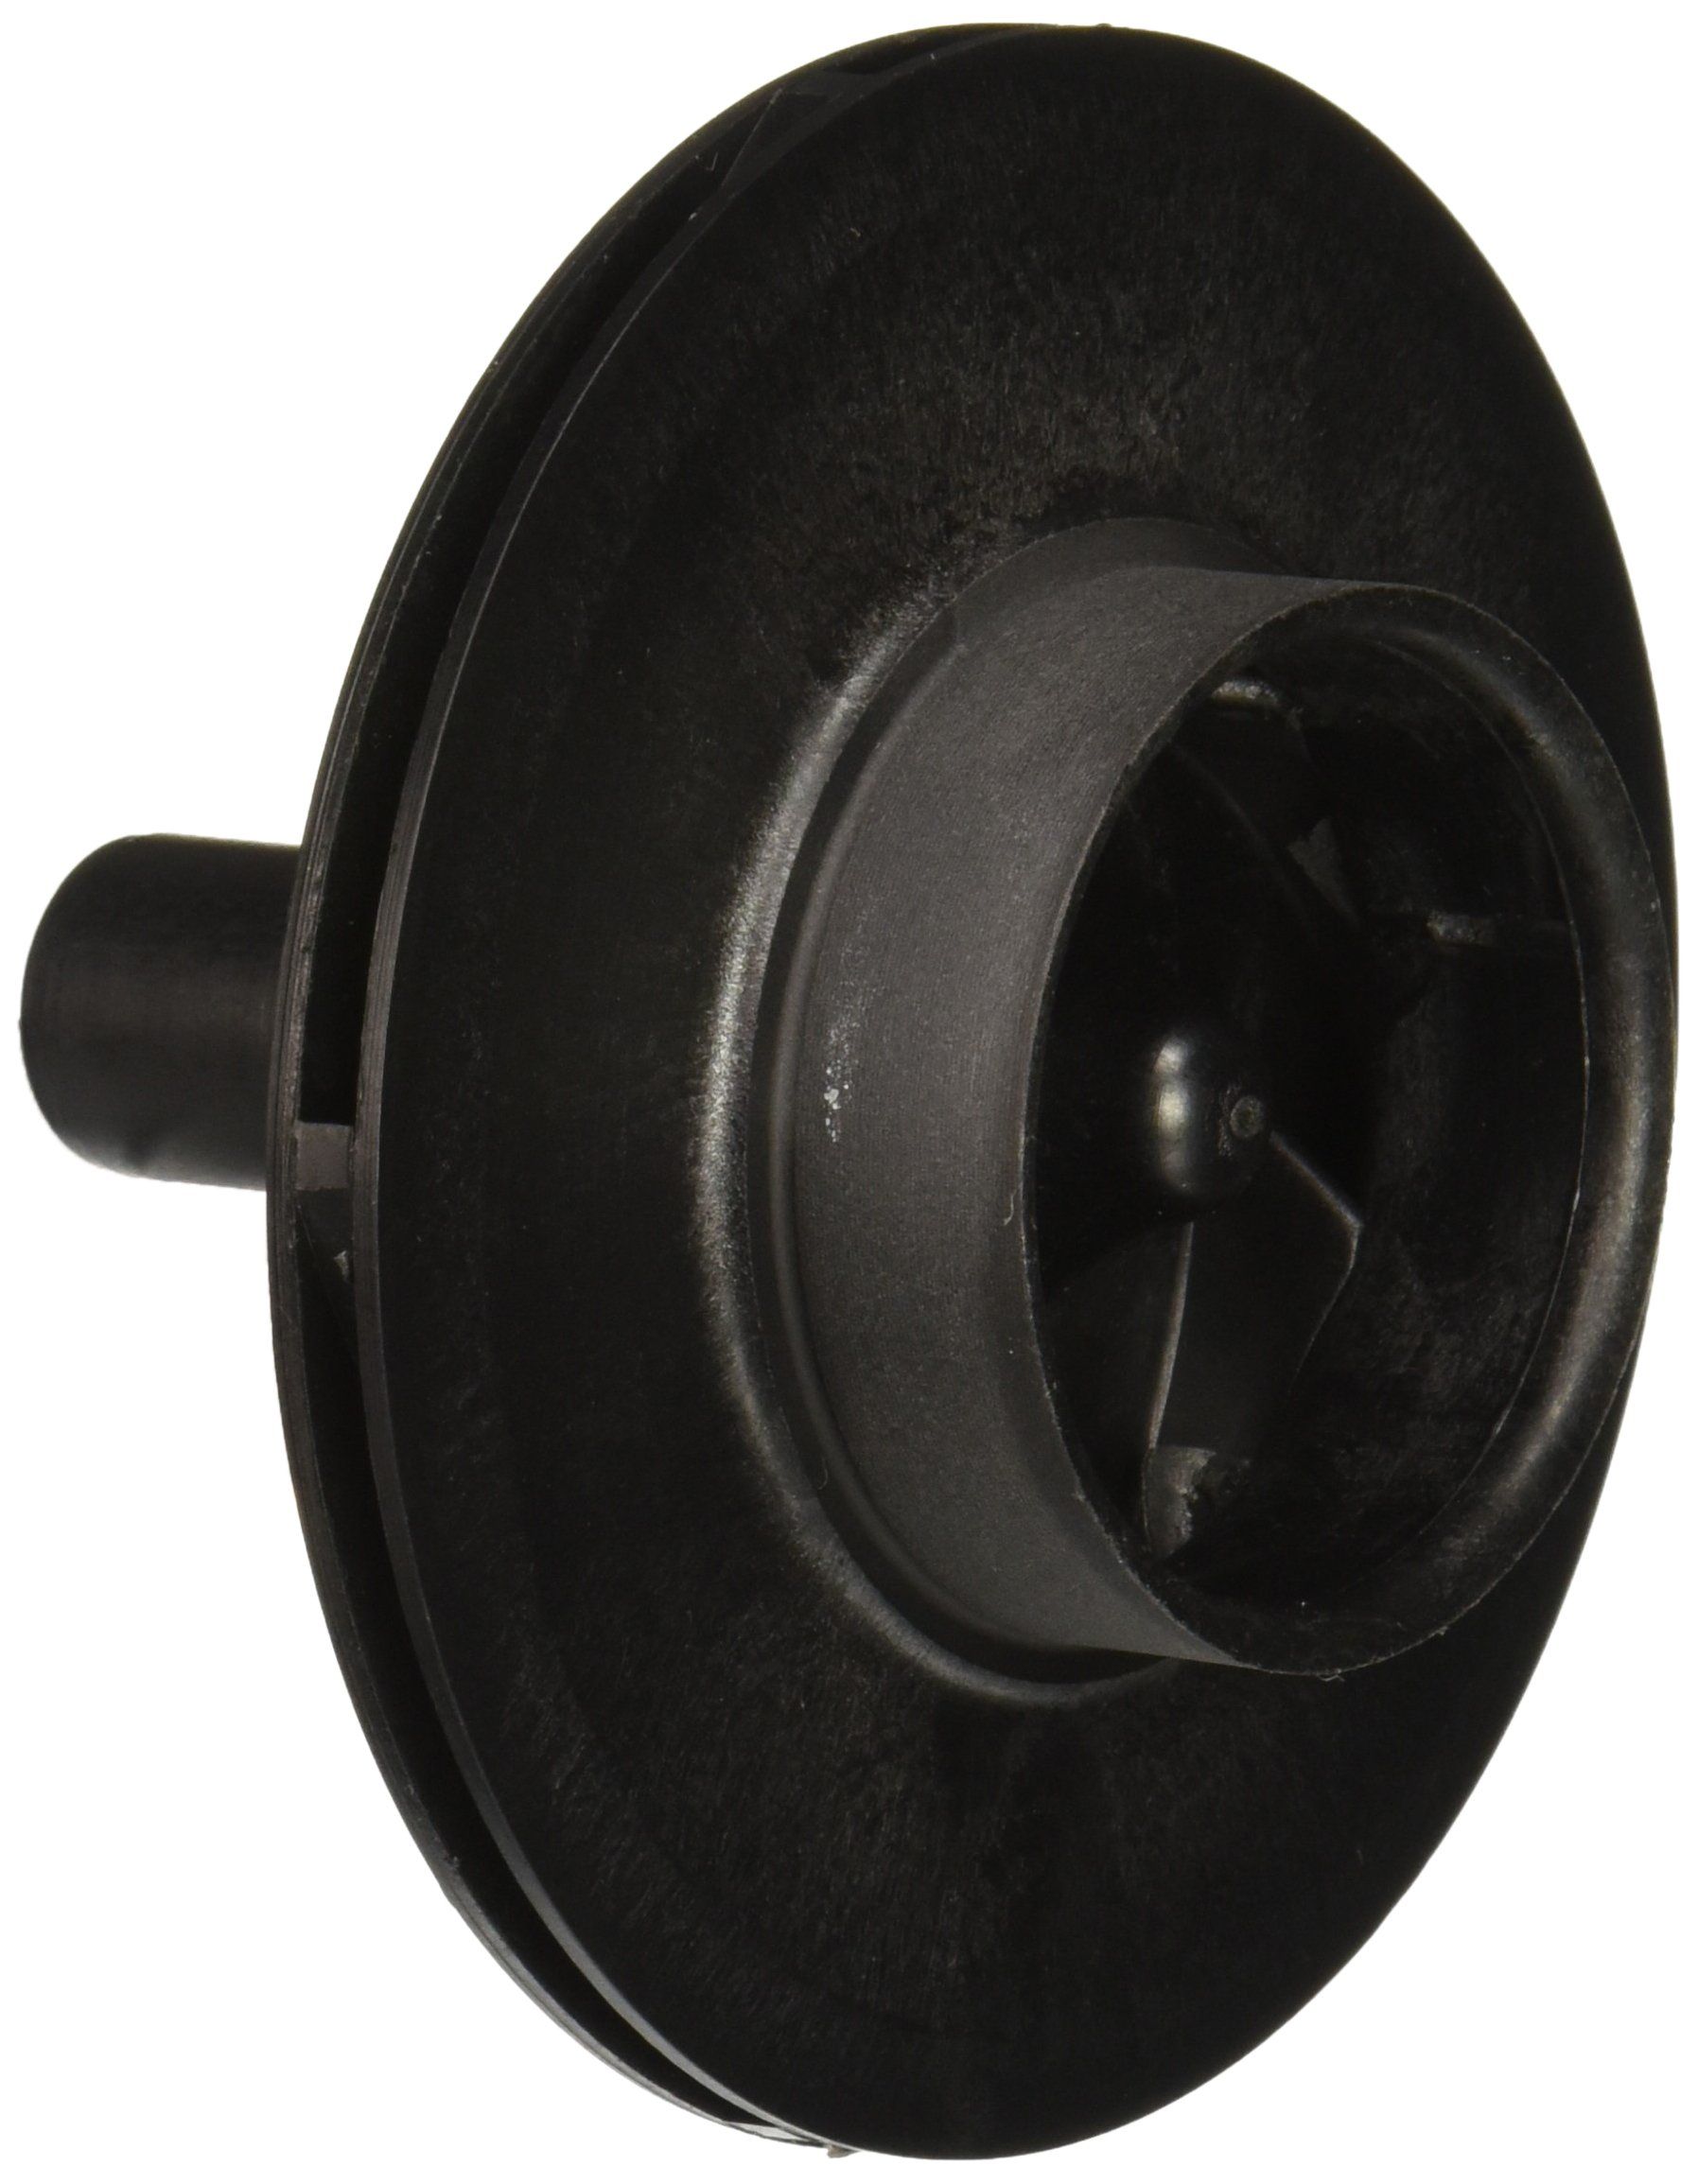 Pentair C105-236PB Impeller Replacement Sta-Rite Inground Pool and Spa Pump